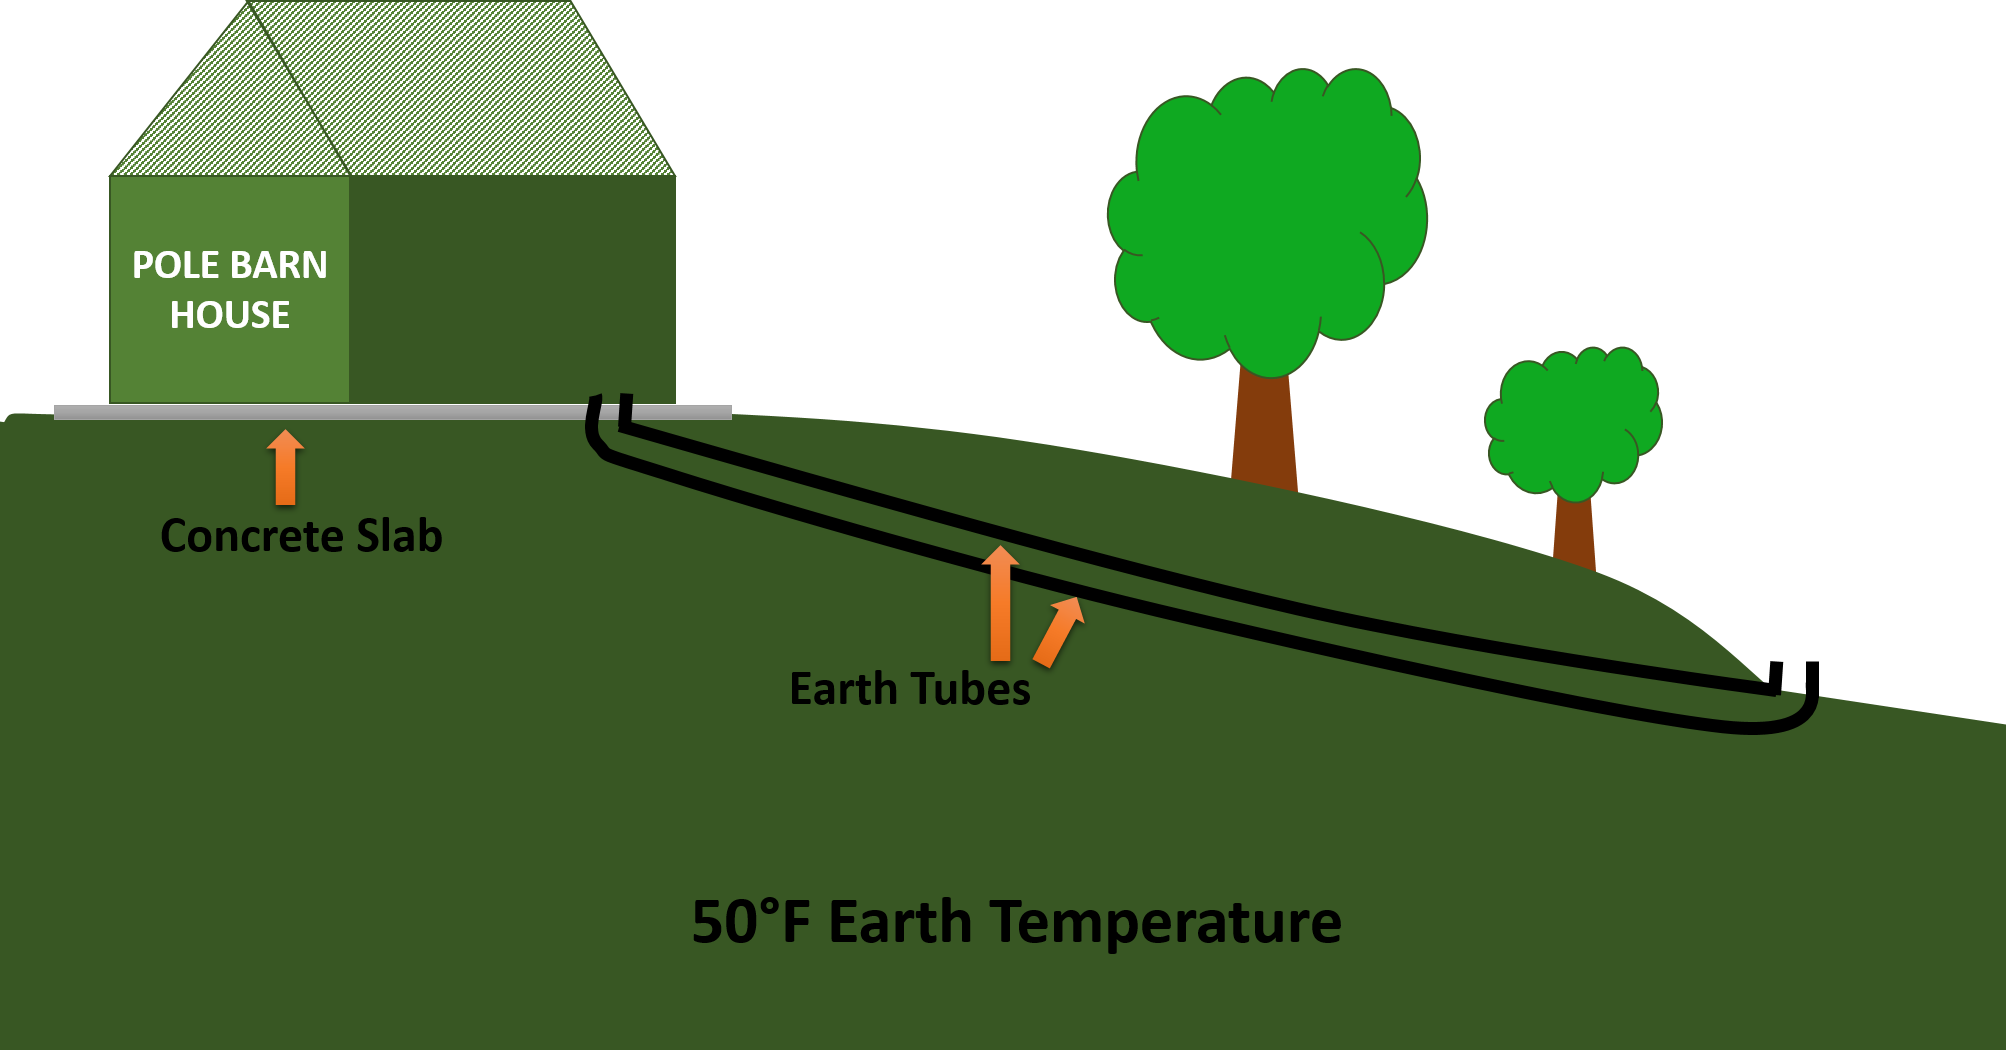 earth tubes how to build a low cost system to passively heat and earth tubes how to build a low cost system to passively heat and cool your home for free